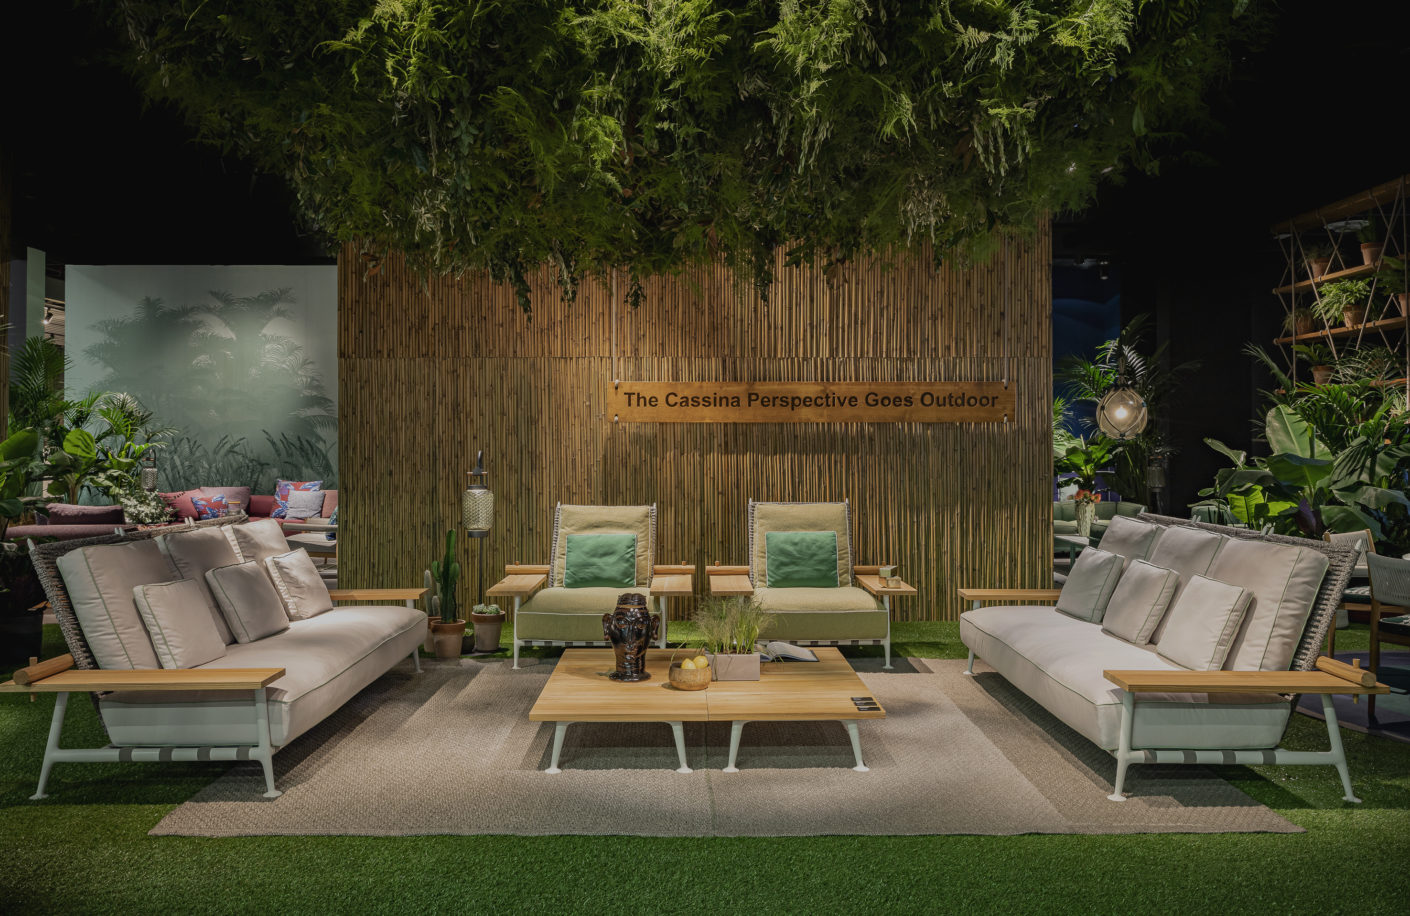 4 CASSINA imm cologne 2020 Fenc e Nature Philippe Starck Cassina Outdoor Collection Stylepark